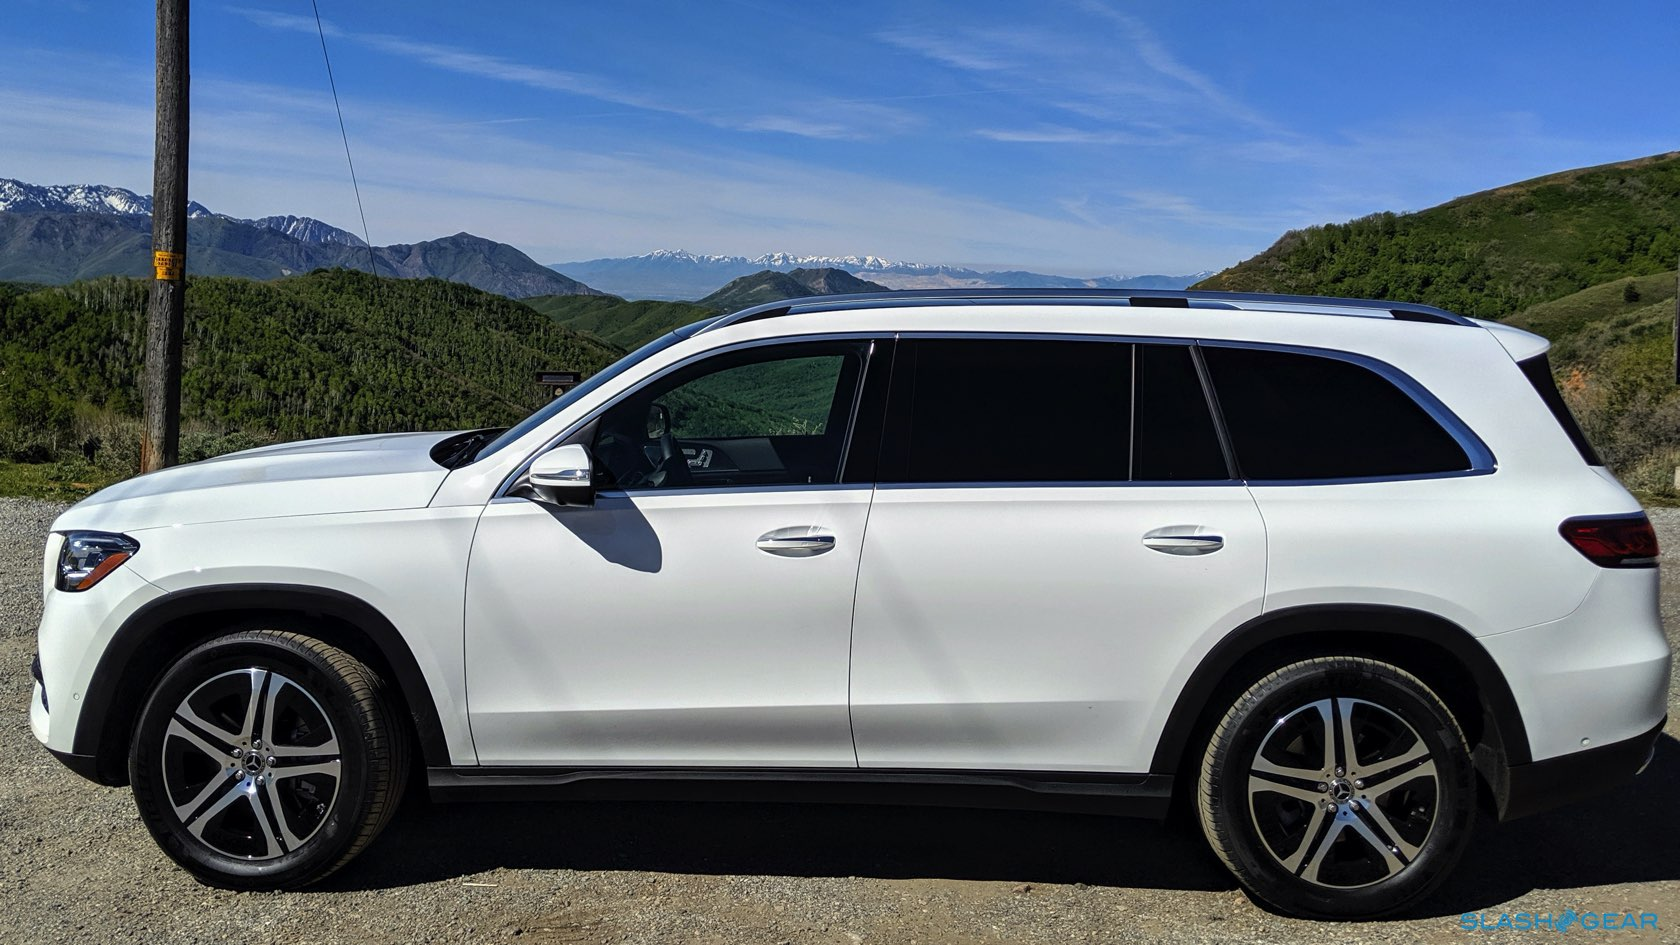 2020 mercedes-benz gls first drive review  the suv that thinks it u0026 39 s an s-class